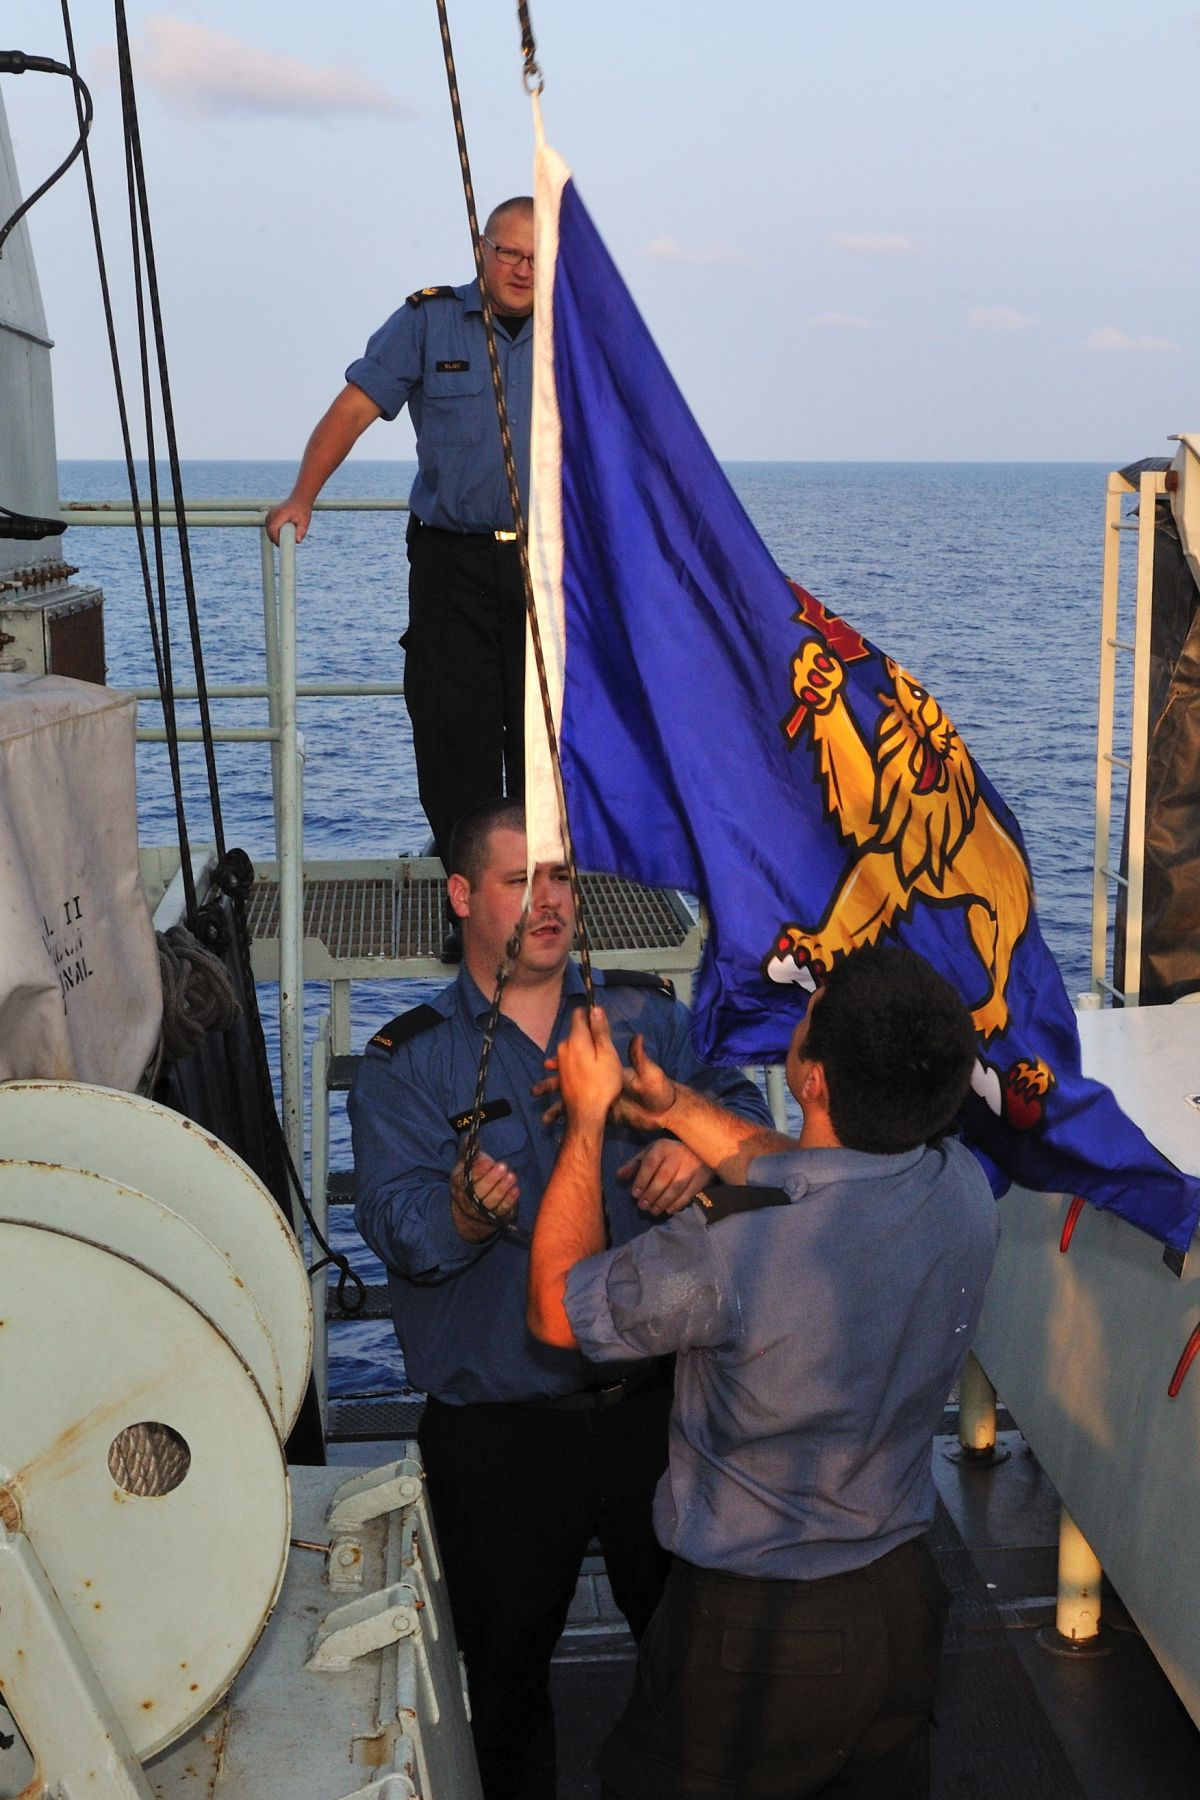 At the end of the day, the Governor General's flag was hoisted upon His Excellency's arrival aboard Her Majesty's Canadian Ship (HMCS) Ottawa.